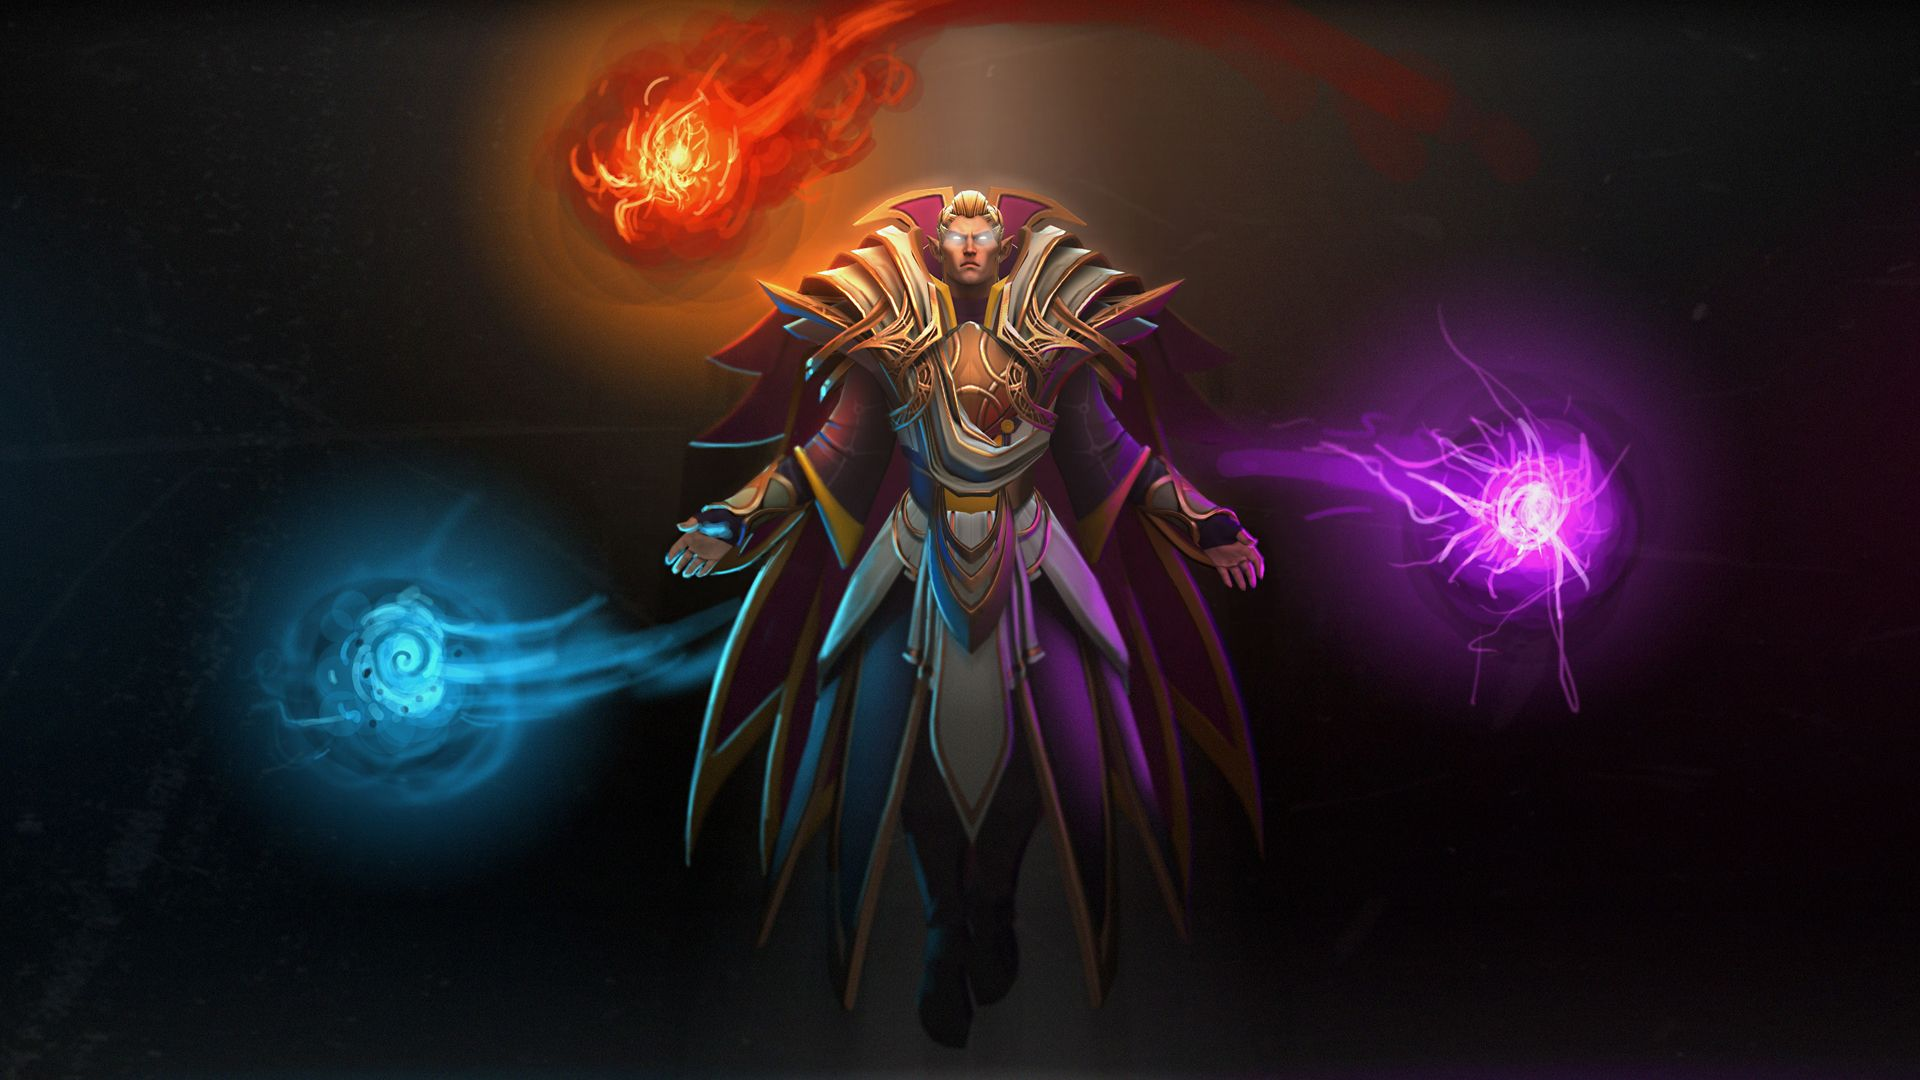 Invoker Wallpapers Wallpaperpulse Dota  Wallpapers Hd Online Images Wallpaper Free Download